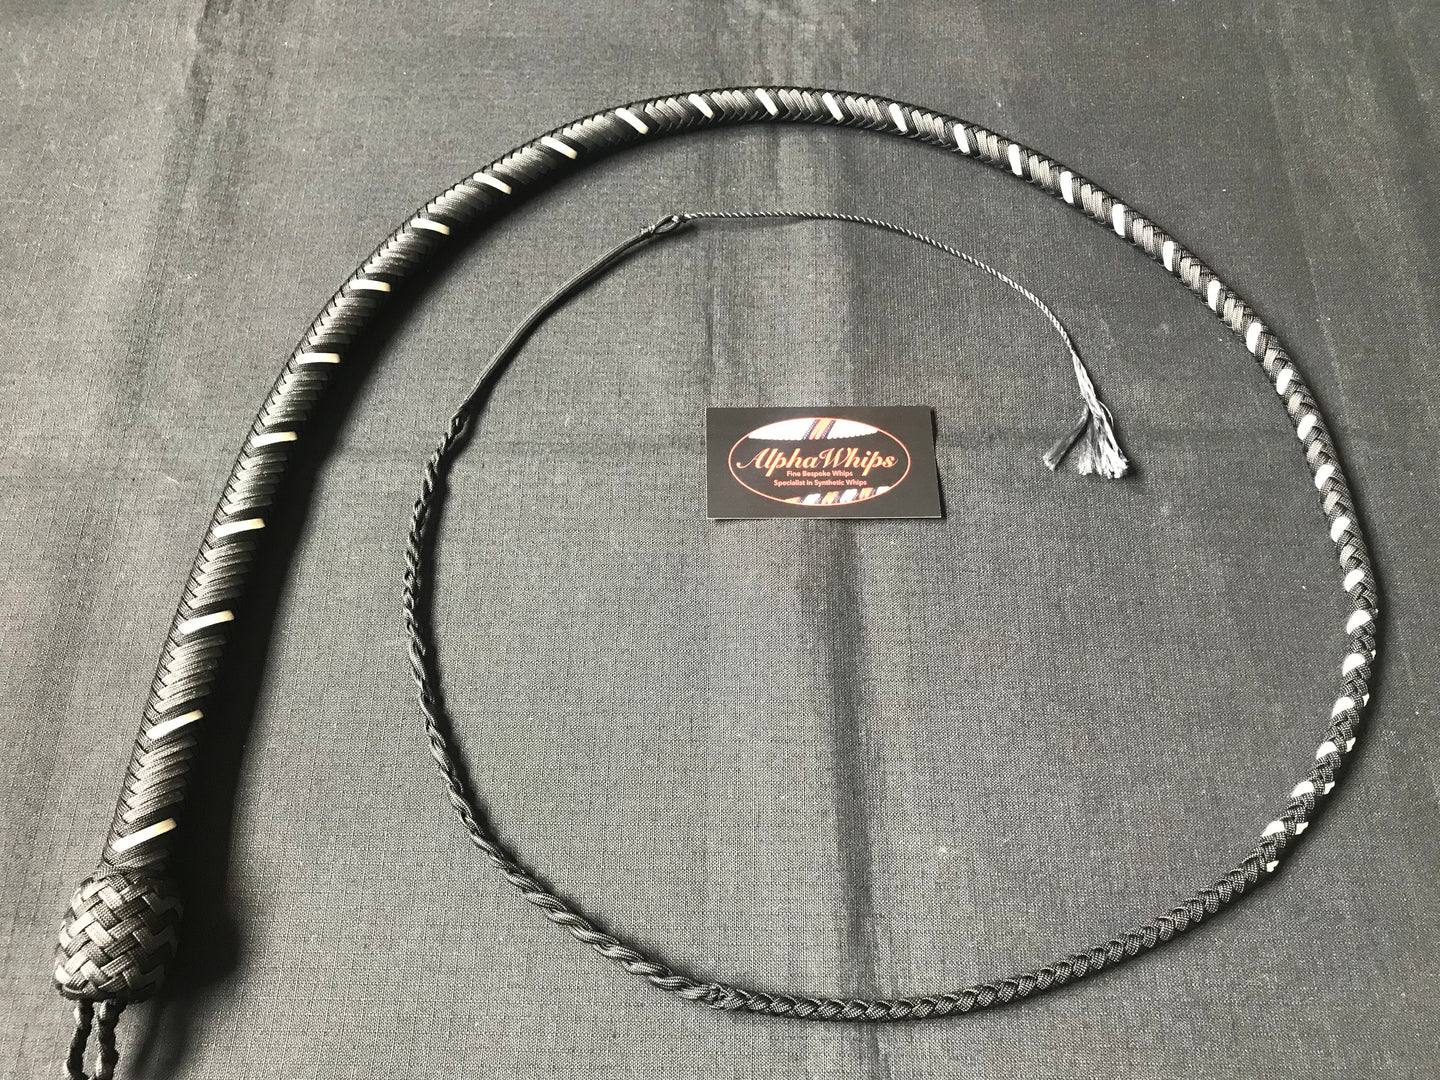 4ft, 16 plait, Foundation Series Nylon Snake Whip, Graphite, Viper Pattern